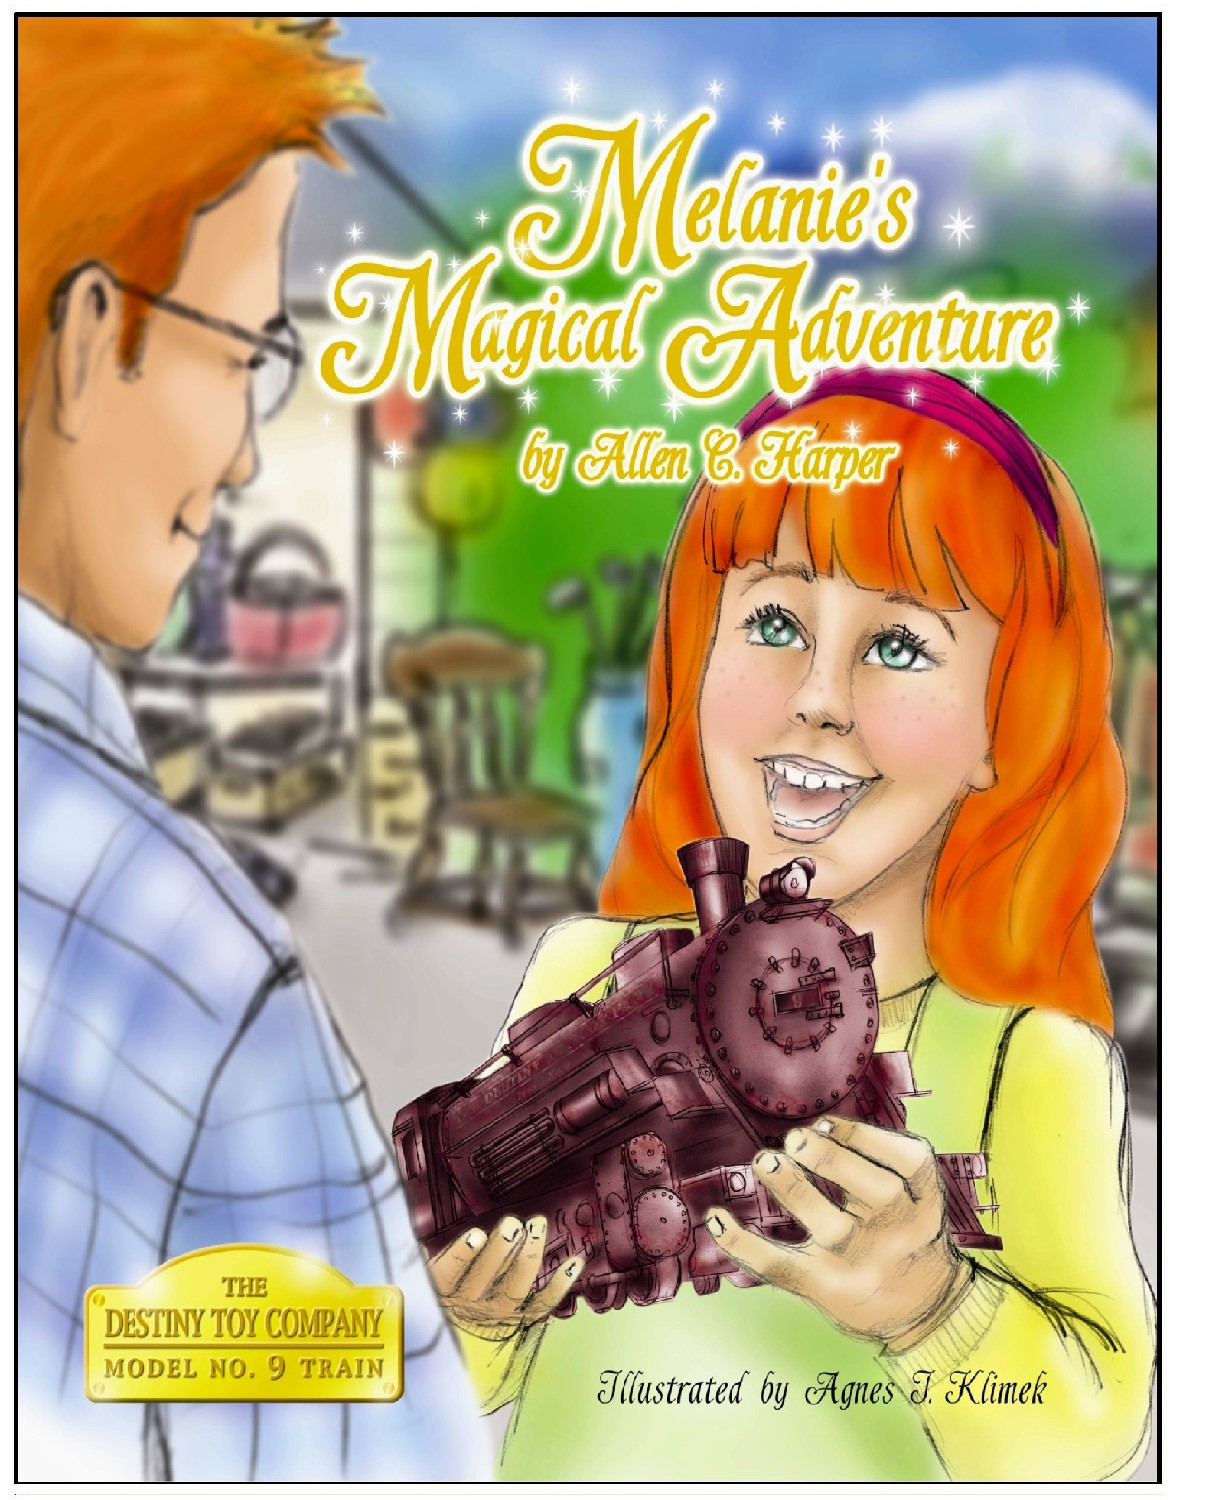 Melanie's Magical Adventure.jpg